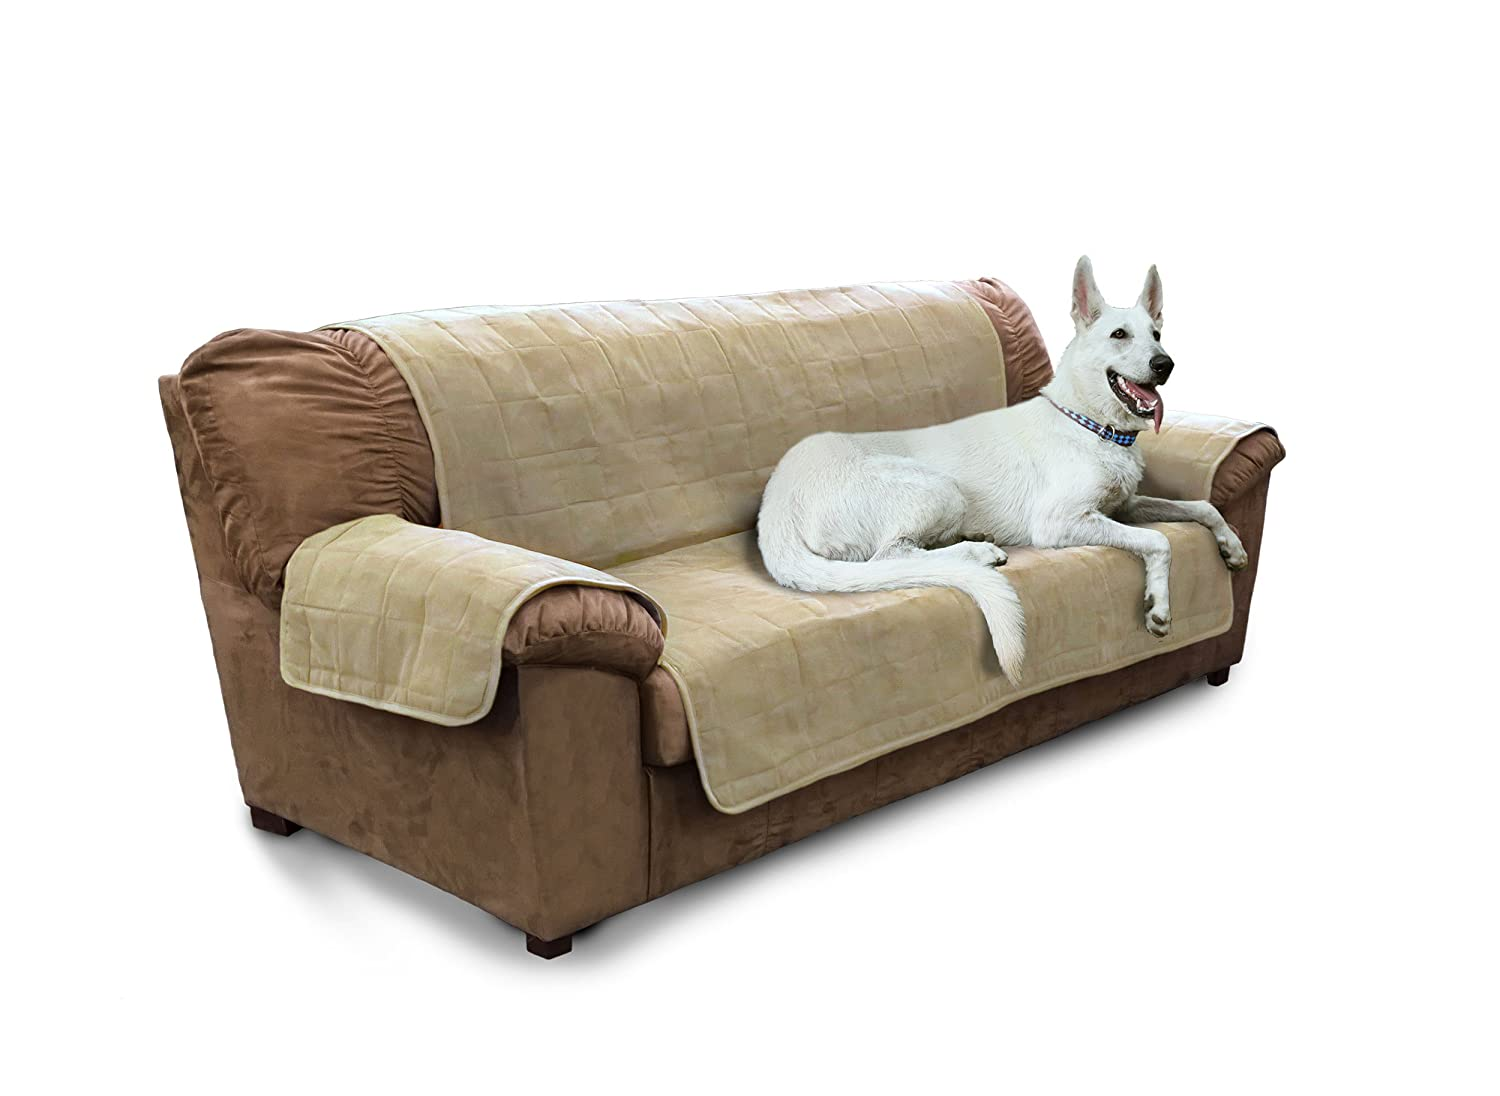 Clay FurHaven Pet Furniture Predector   Home Sofa Predector Cover for Dogs & Cats, Clay